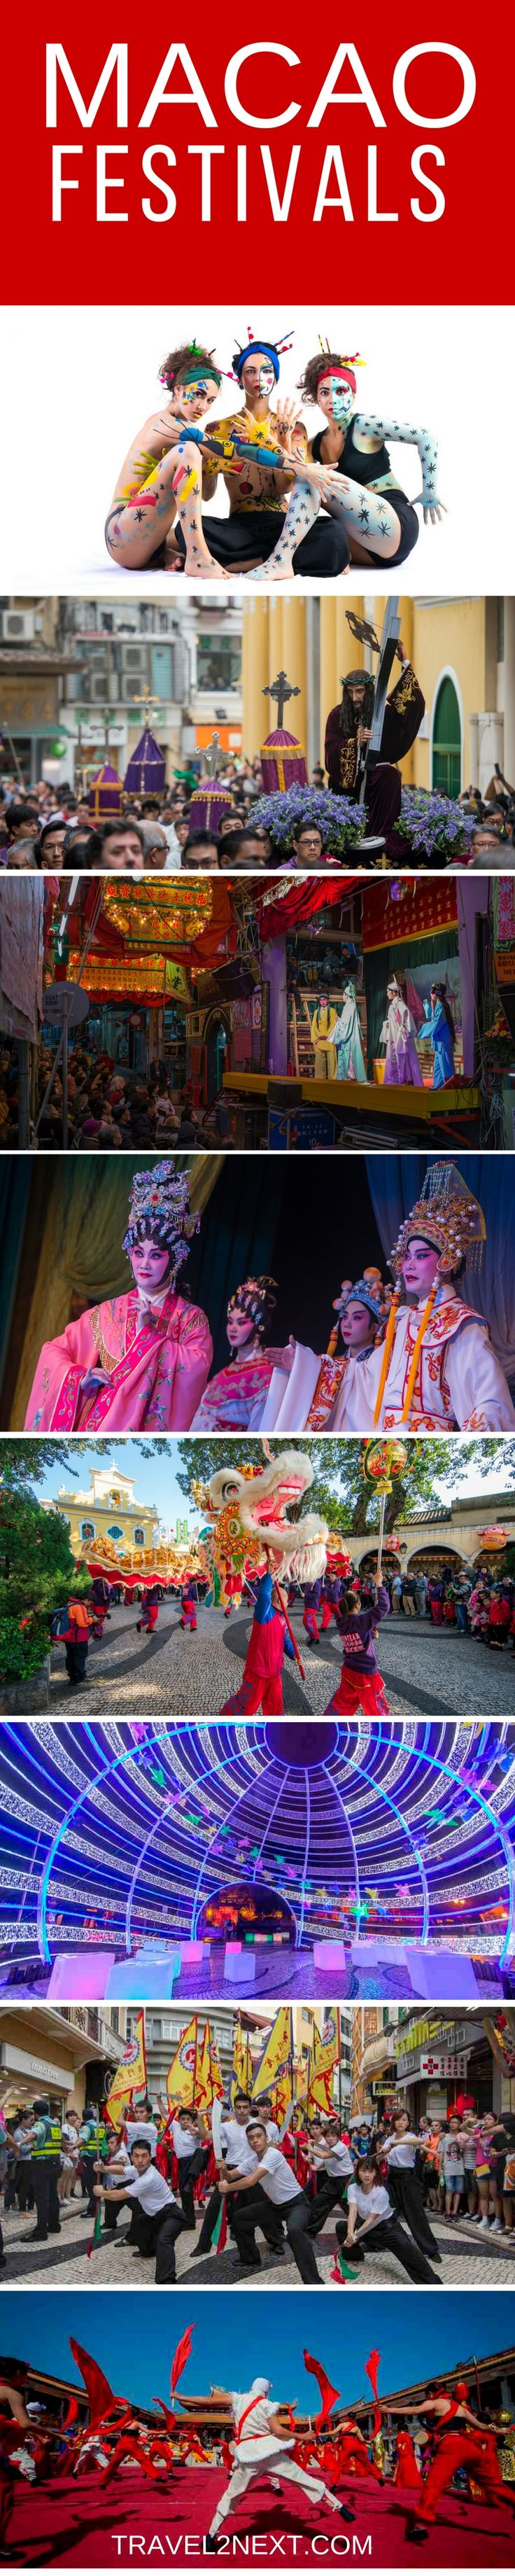 Macao festivals and events. You know that a city deserves to be called a city of festivals when there's at least one festival a month.